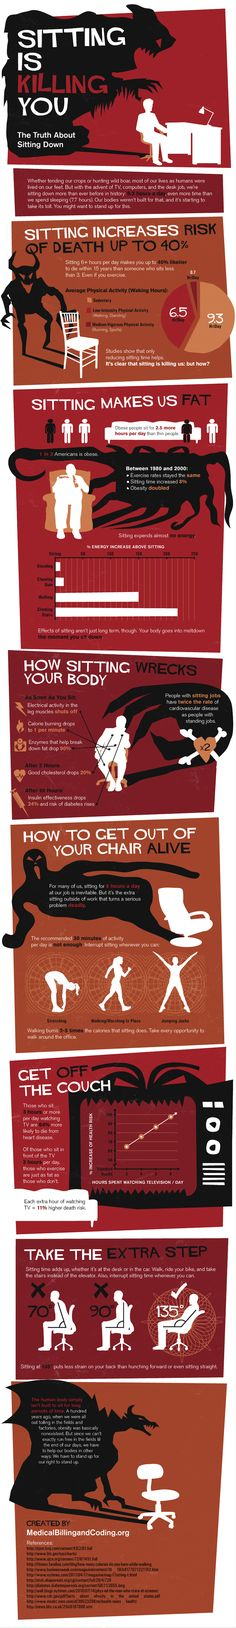 Health Risks of Sitting Down Too Long